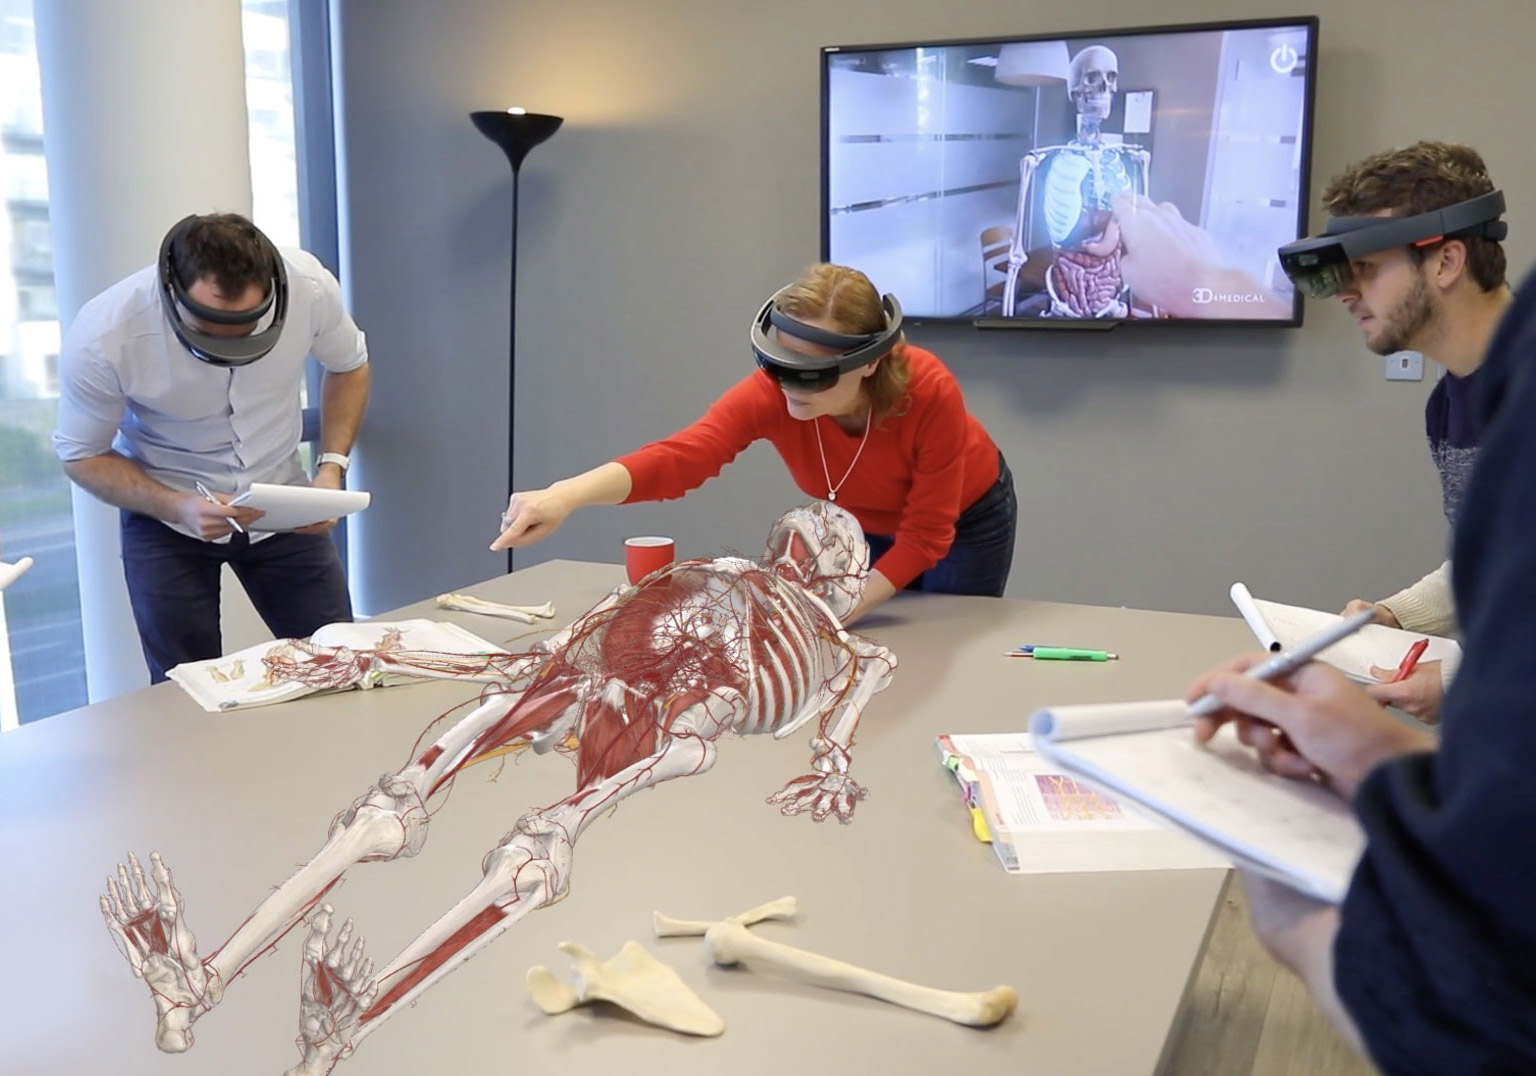 Researchers using AR to study the human skeletal system